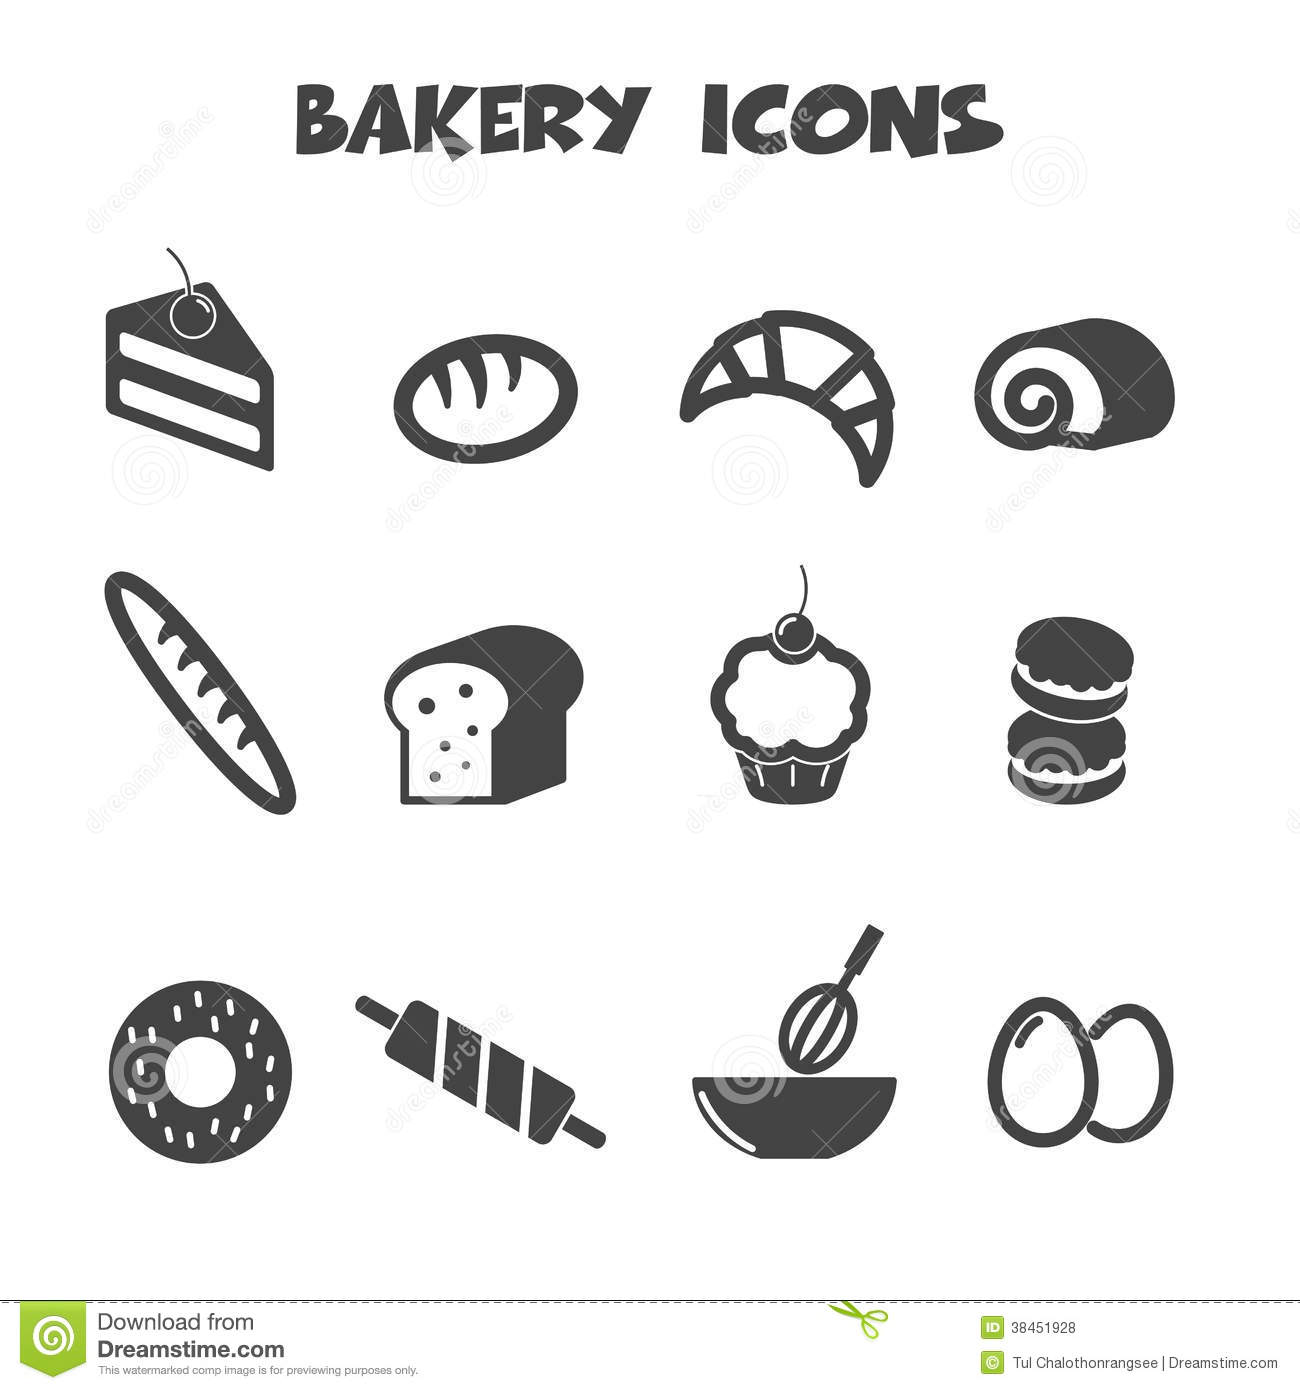 Bakery Icons Royalty Free Stock Photos - Image: 38451928